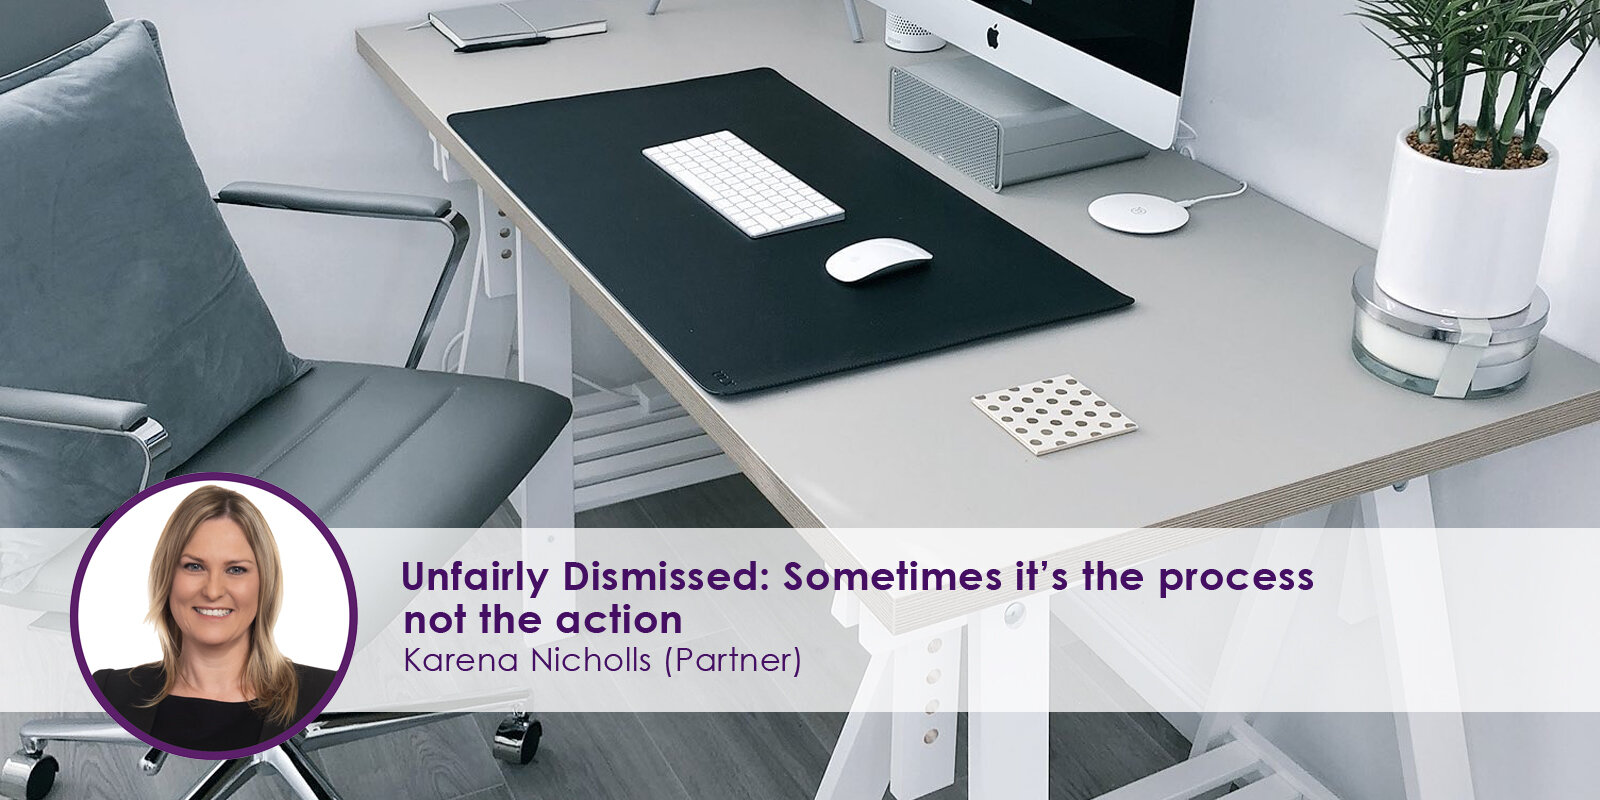 Unfairly-Dismissed-Sometimes-it's-the-process-not-the-action.jpg